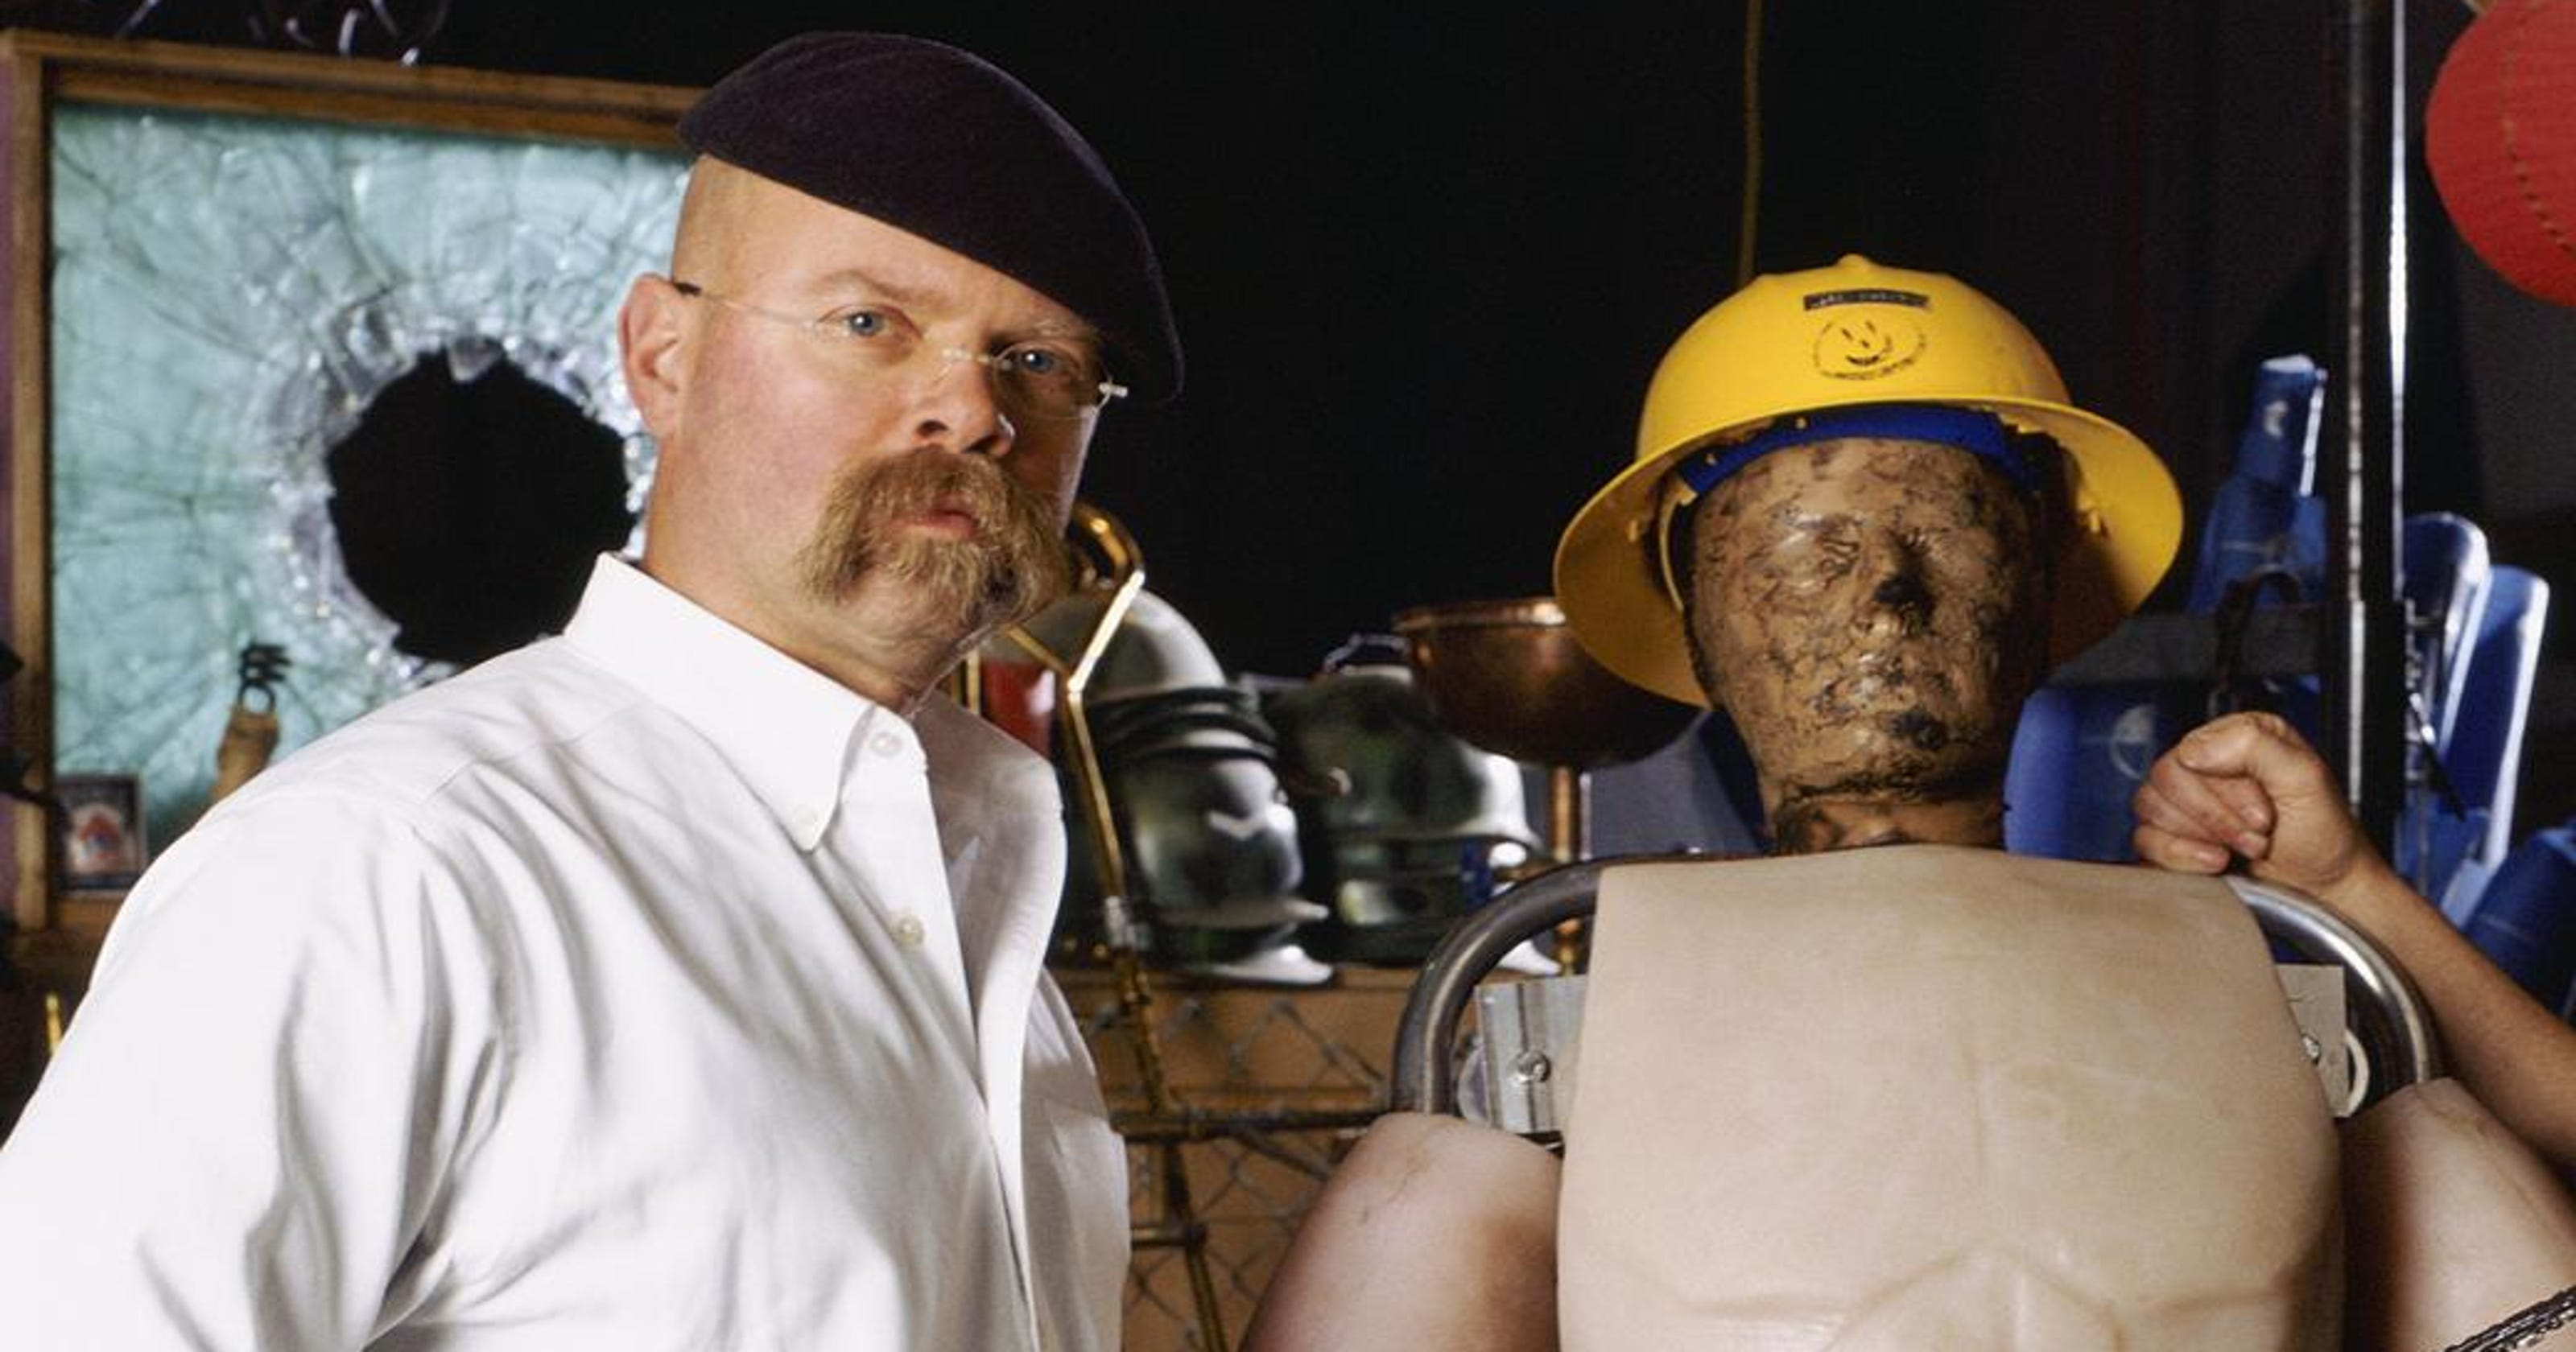 Mythbusters' host Jamie Hyneman to speak at IU commencement